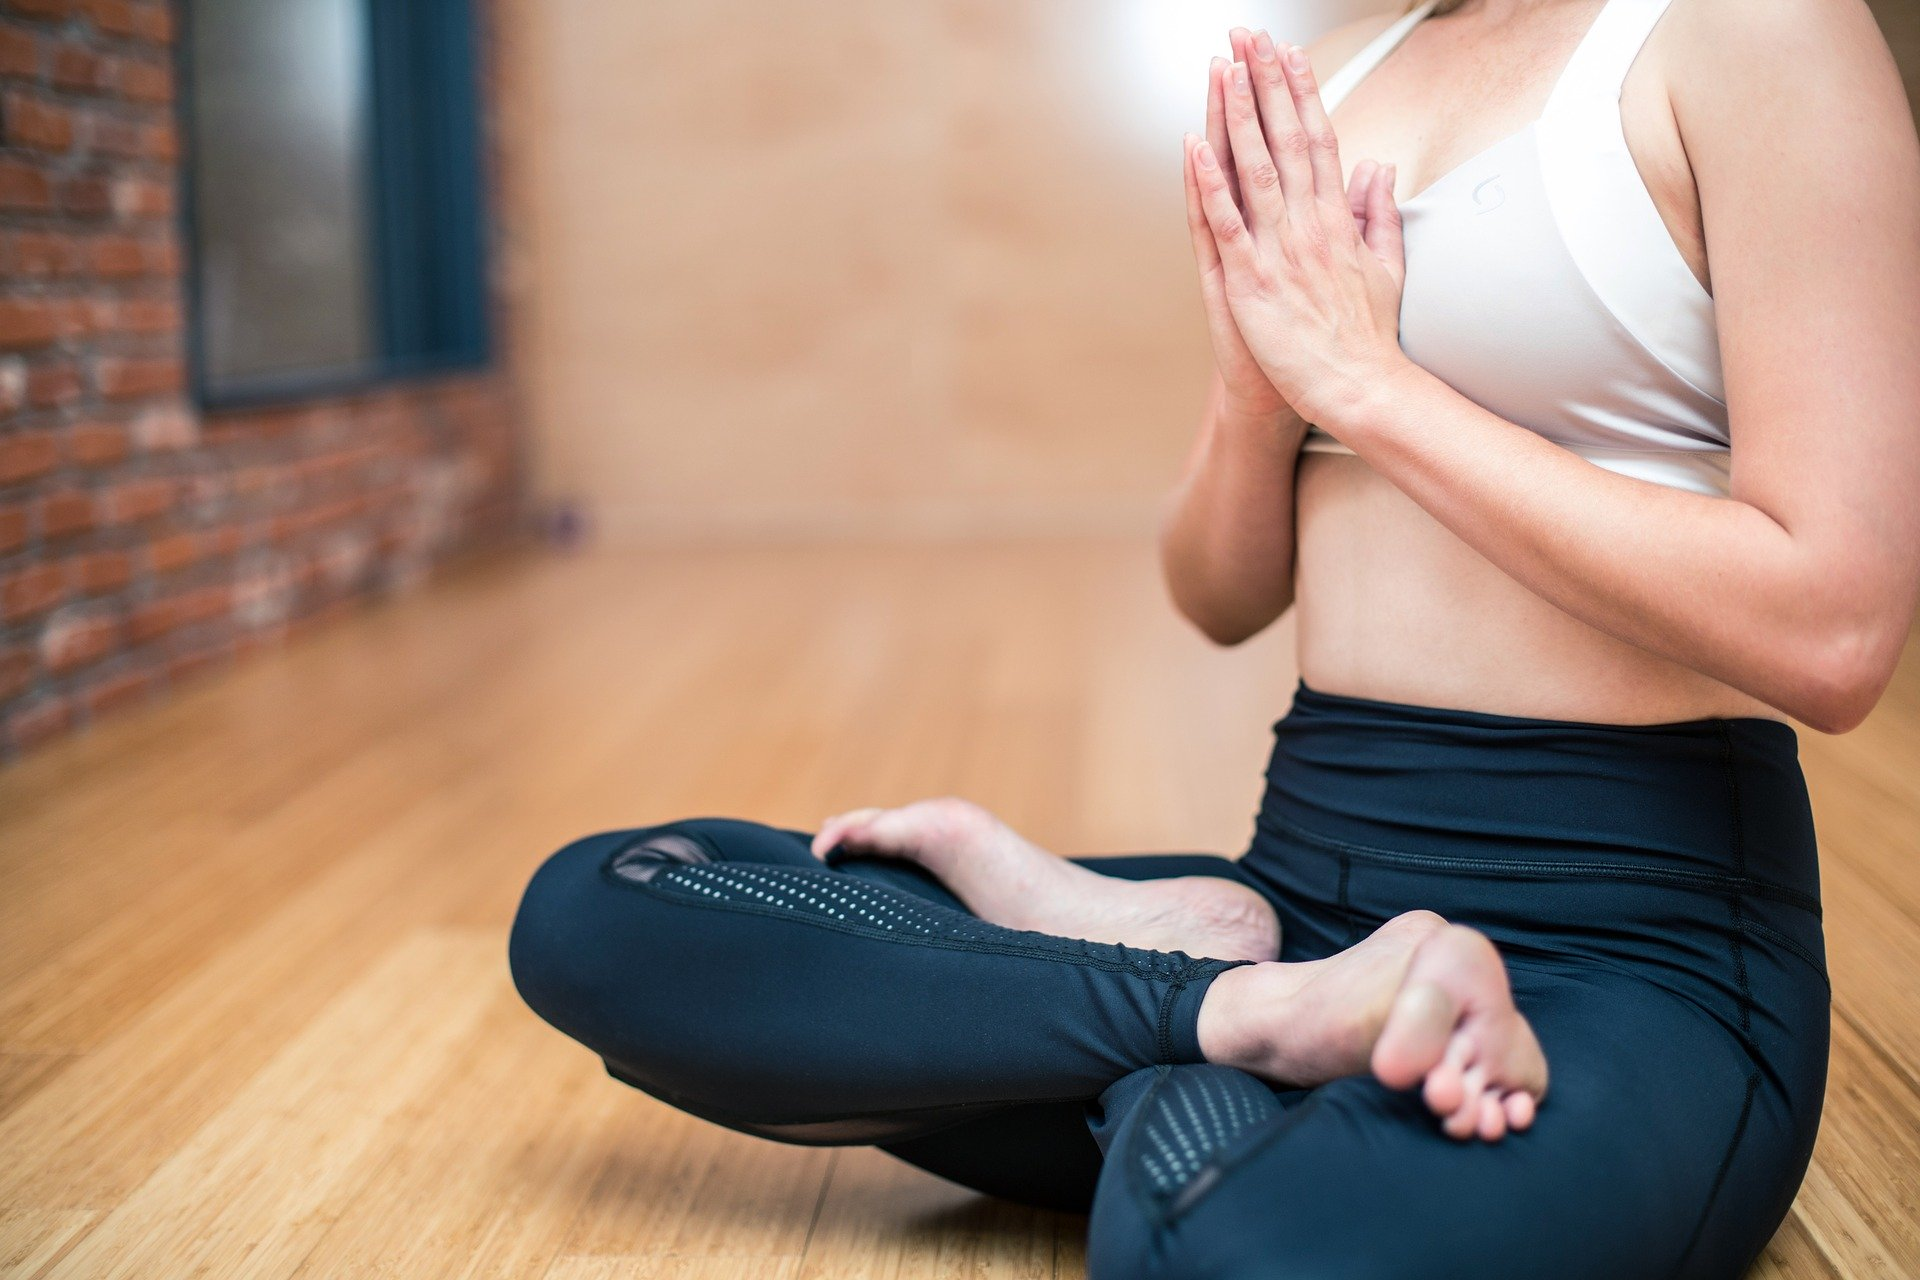 Experience The Relaxing Feeling With Yoga Spiritual Photographs